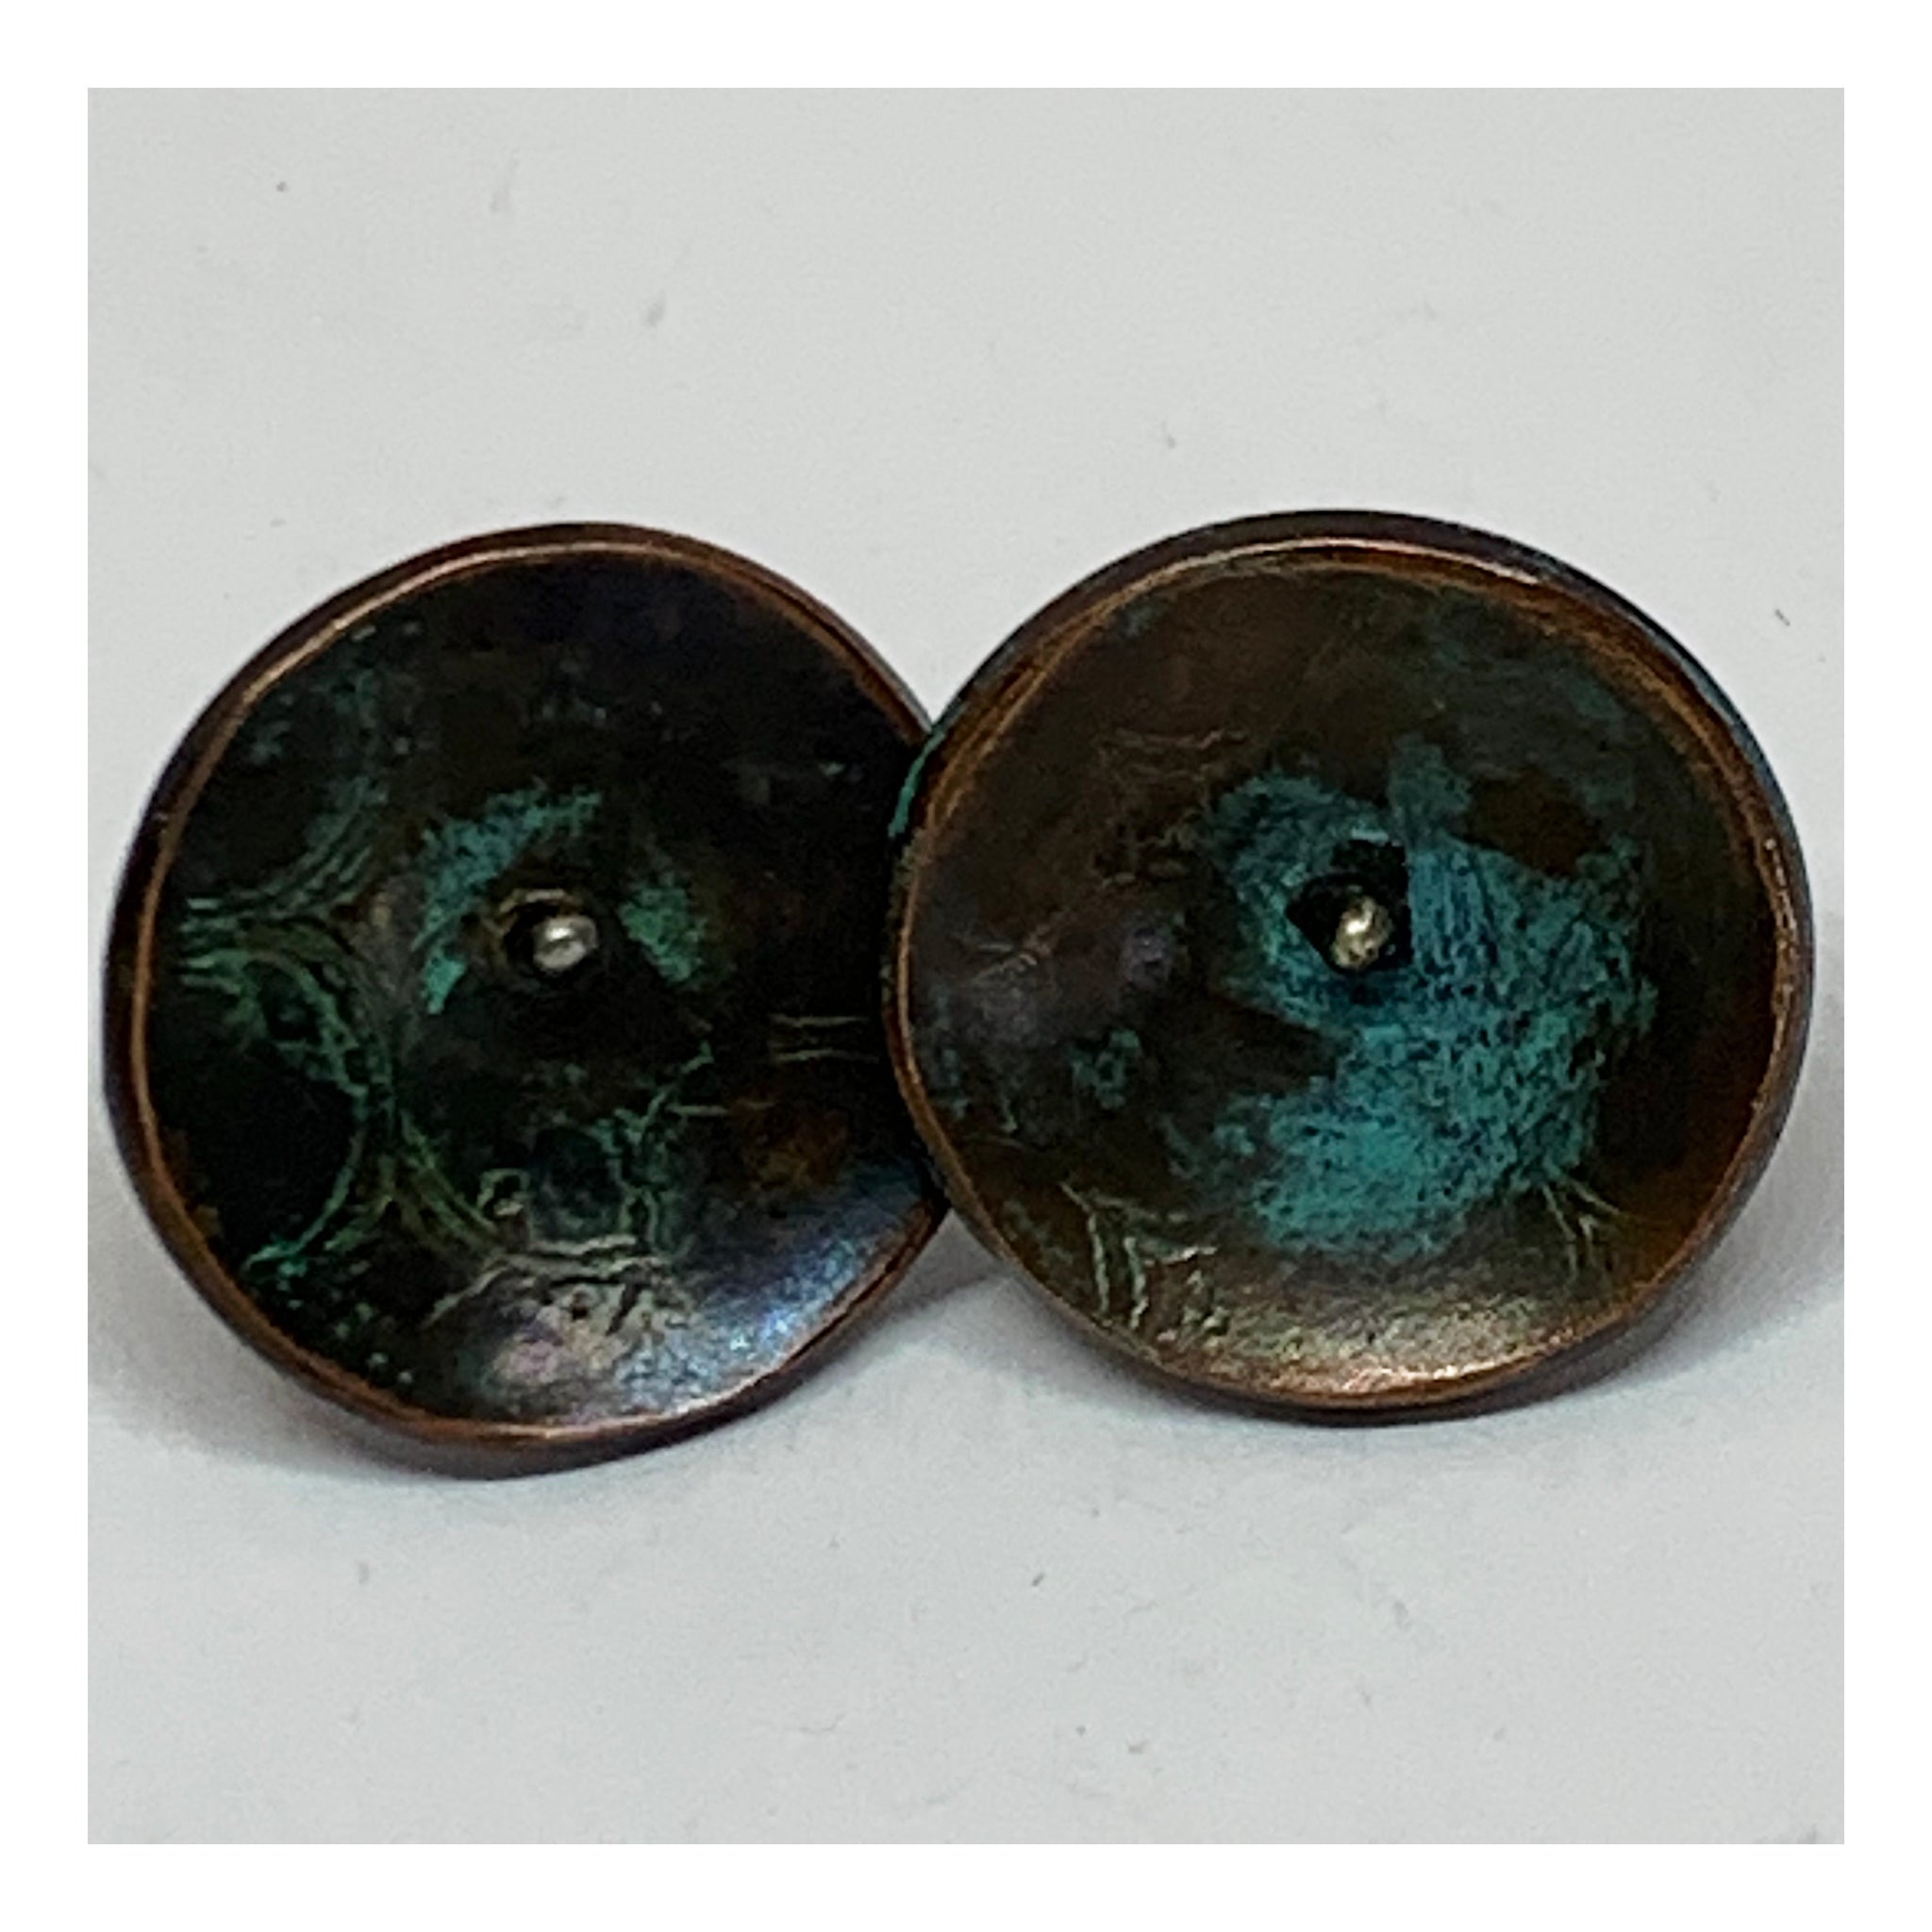 Everyday Disc Earrings - Unisex Jewelry - Earthy Earrings